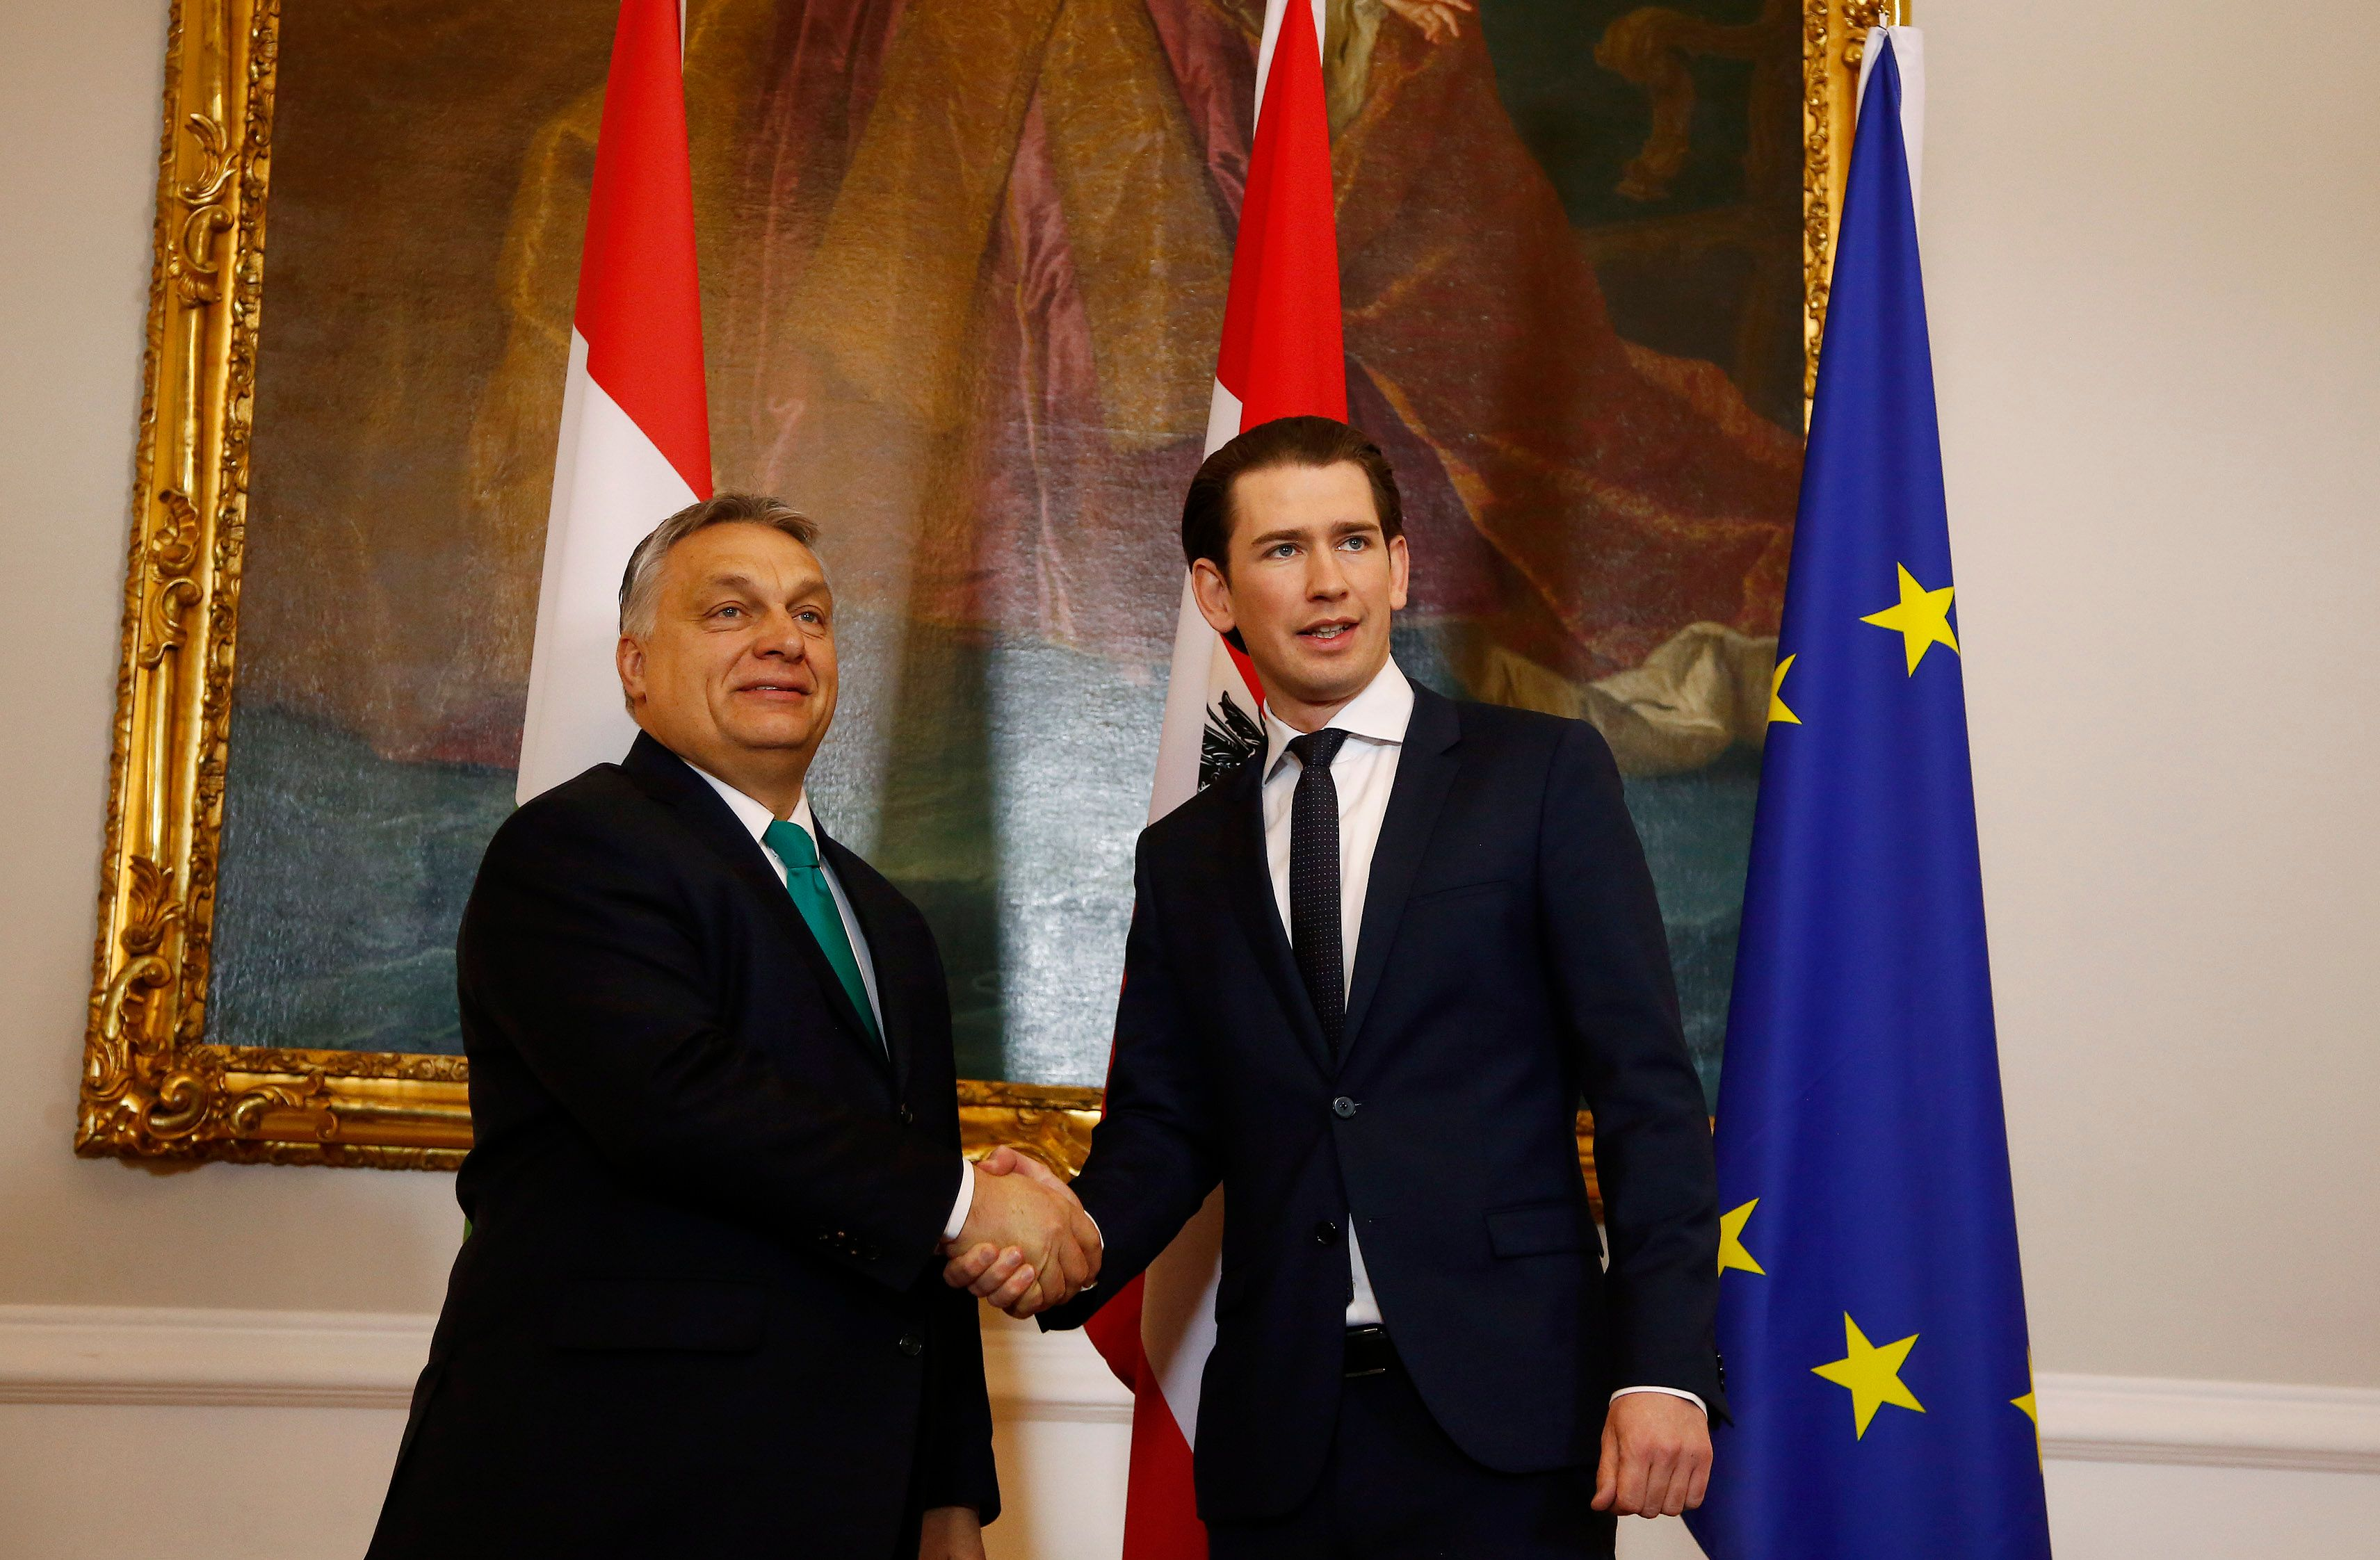 Austria's New Right-Wing Chancellor Backs Hungary, Poland on Migrant Quotas